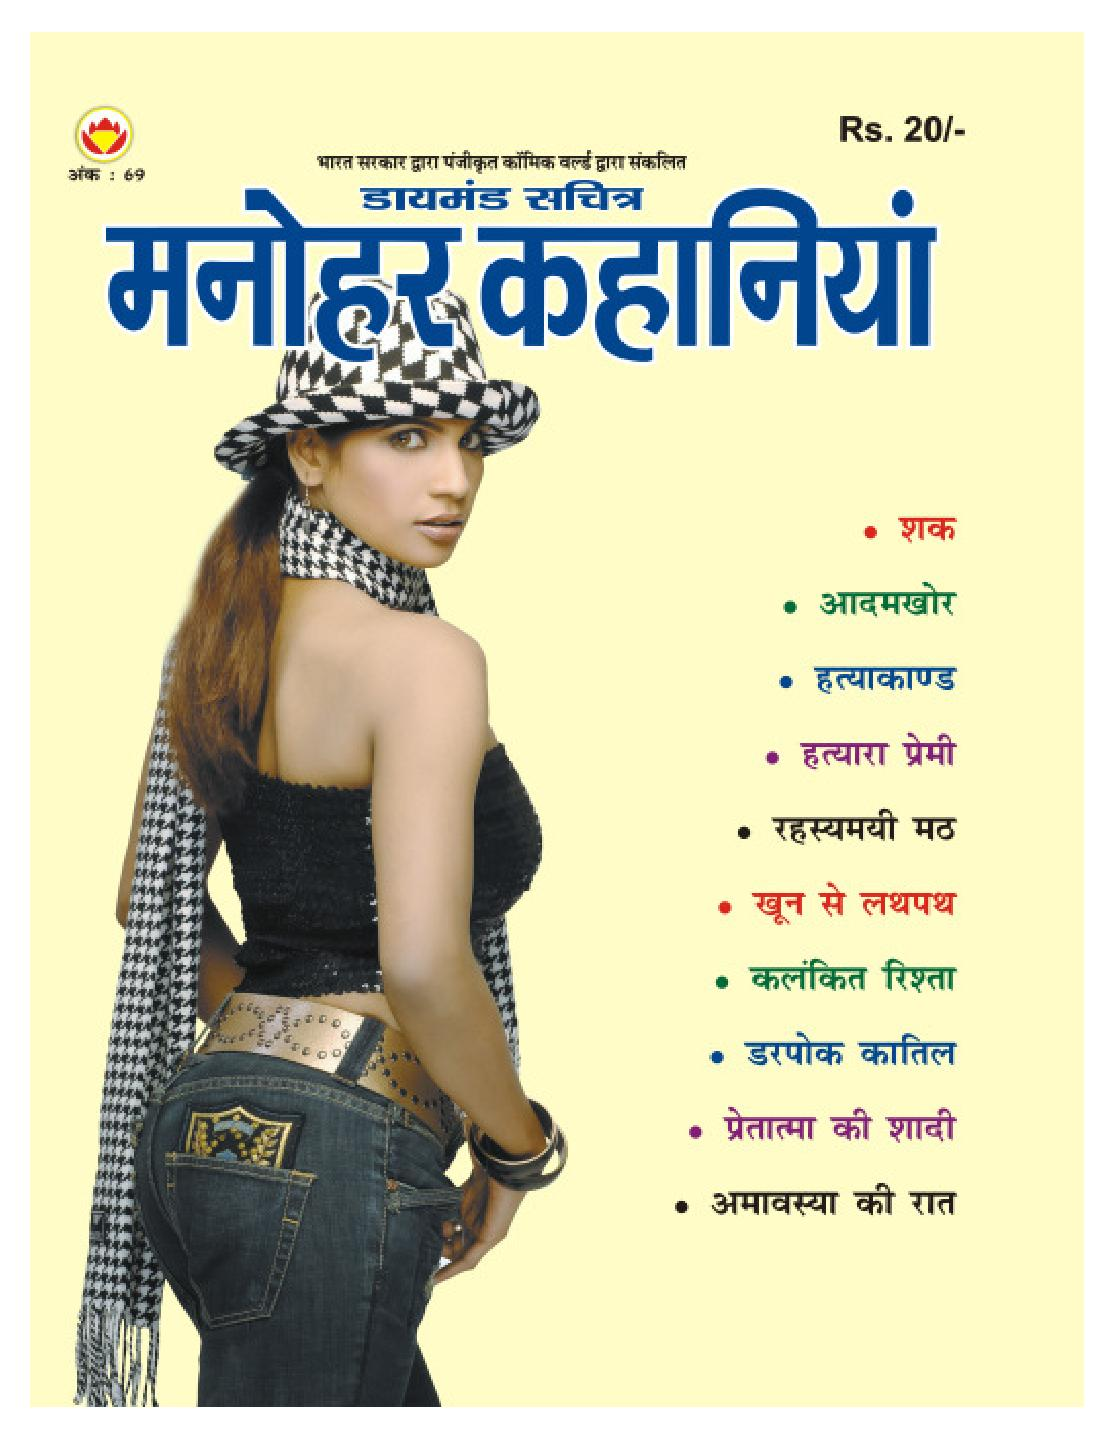 Manohar Kahaniya 69 Hindi Monthly Magazine